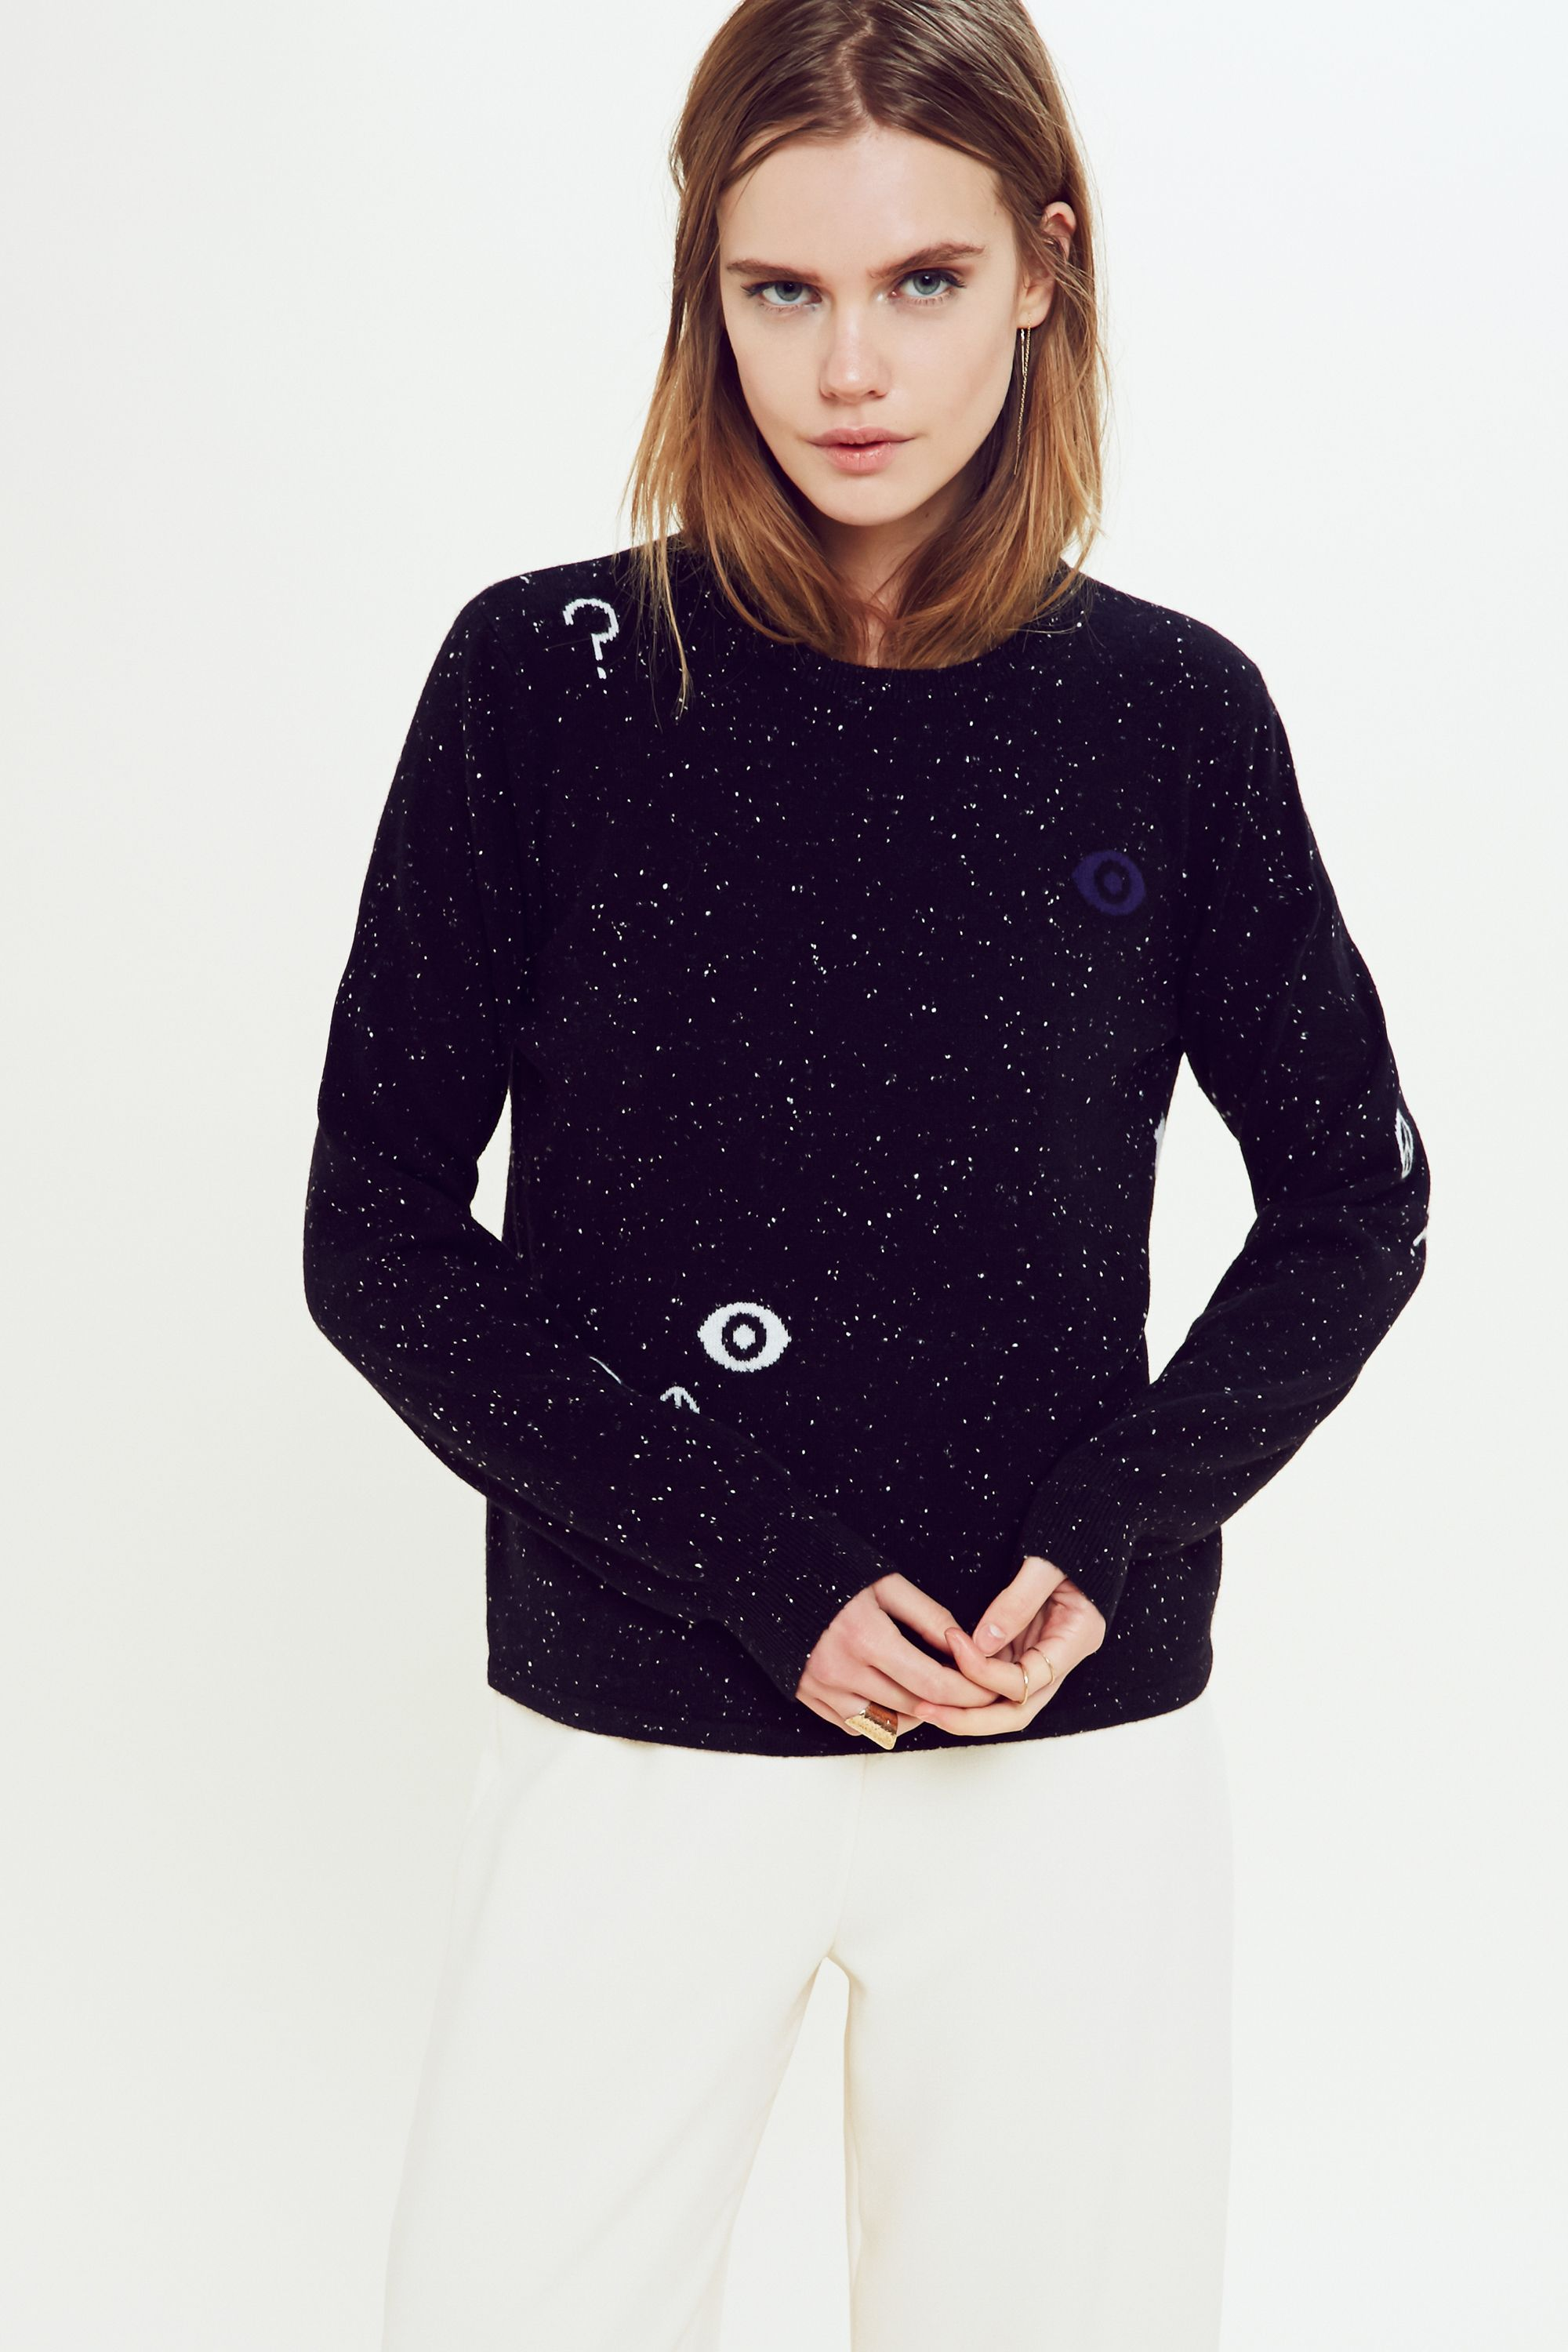 Elemental cashmere sweater | VEDA Fall 2015 Collection | VEDA FALL ...